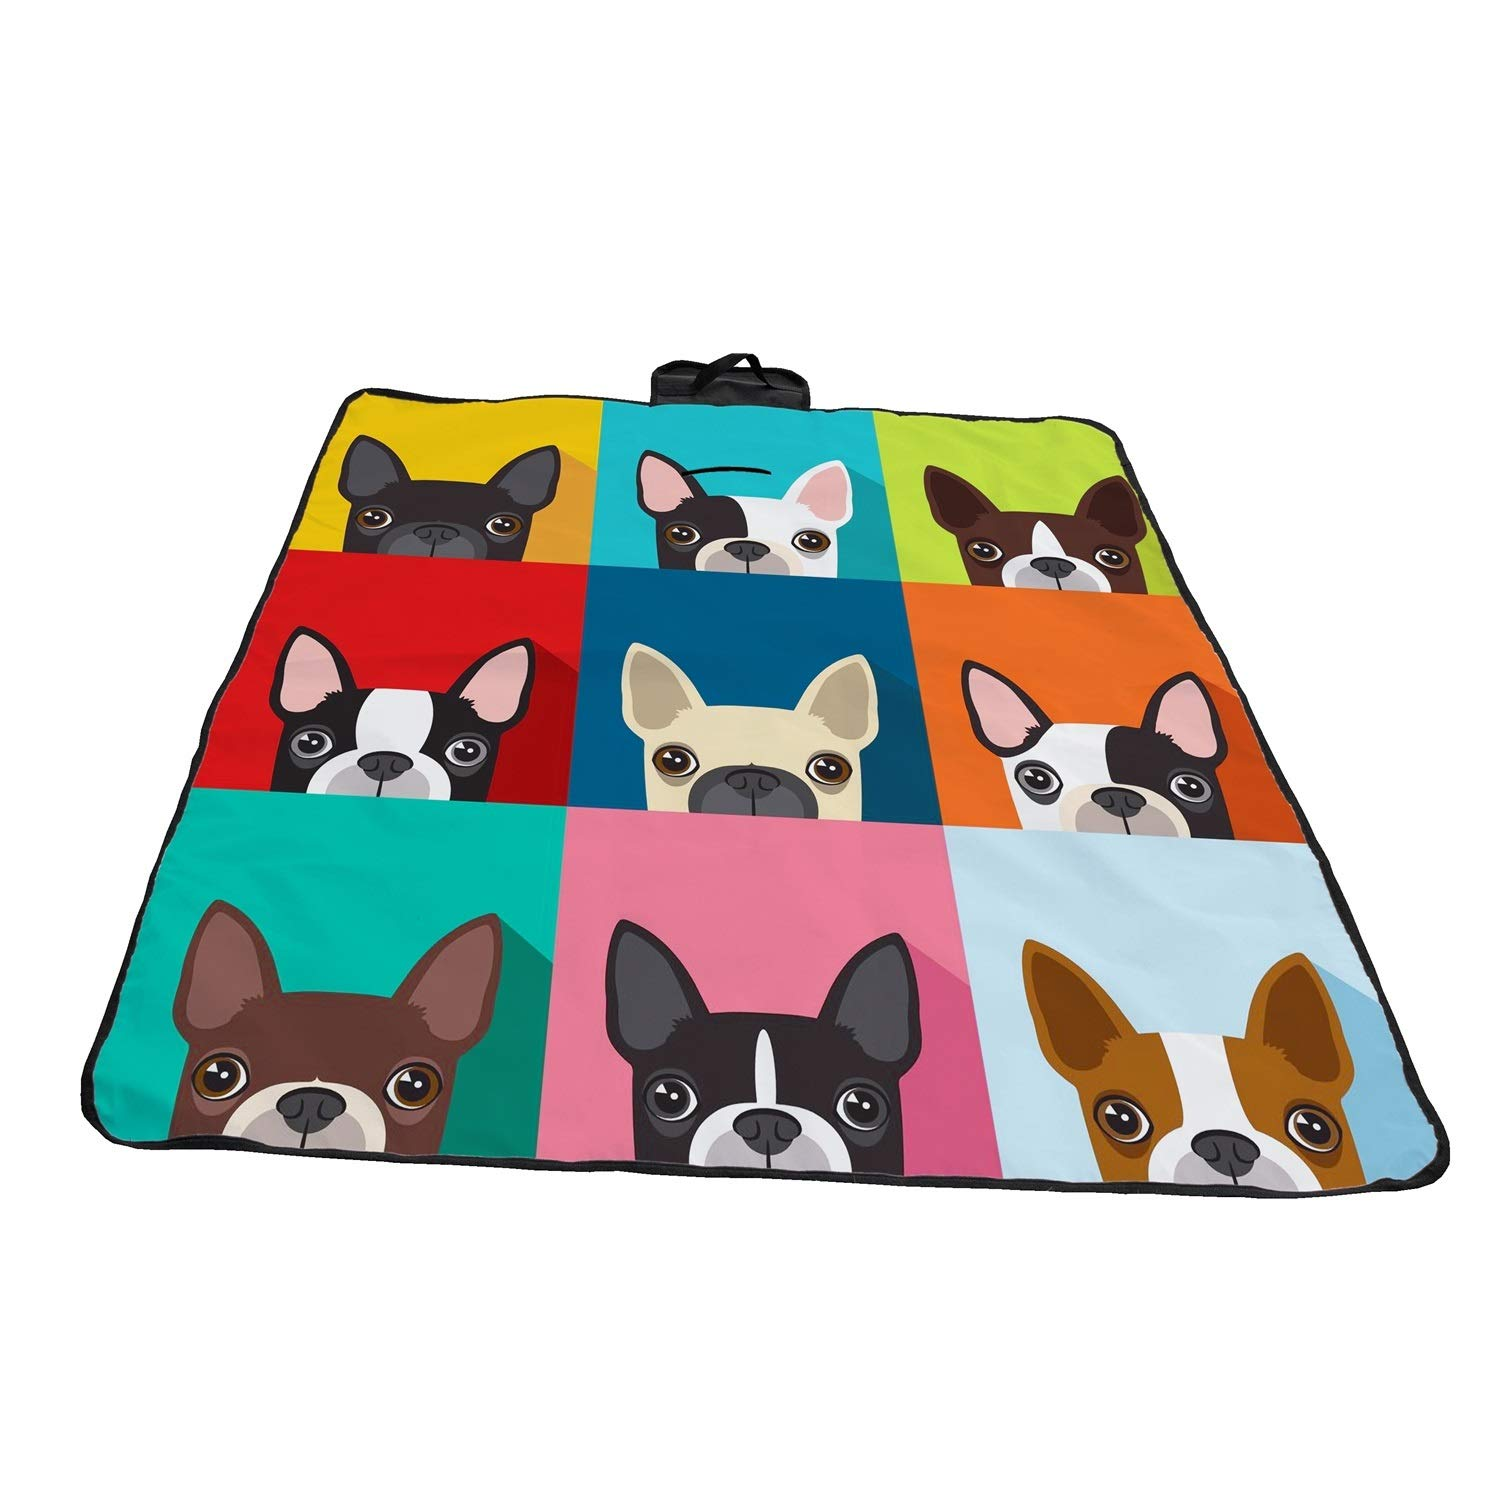 A&S Creavention Waterproof Outdoor Picnic Beach Blanket Mat Lightweight Portable Handcarry Tote Easy to fold 72'' x 58'' (Bull Dog) by A&S Creavention